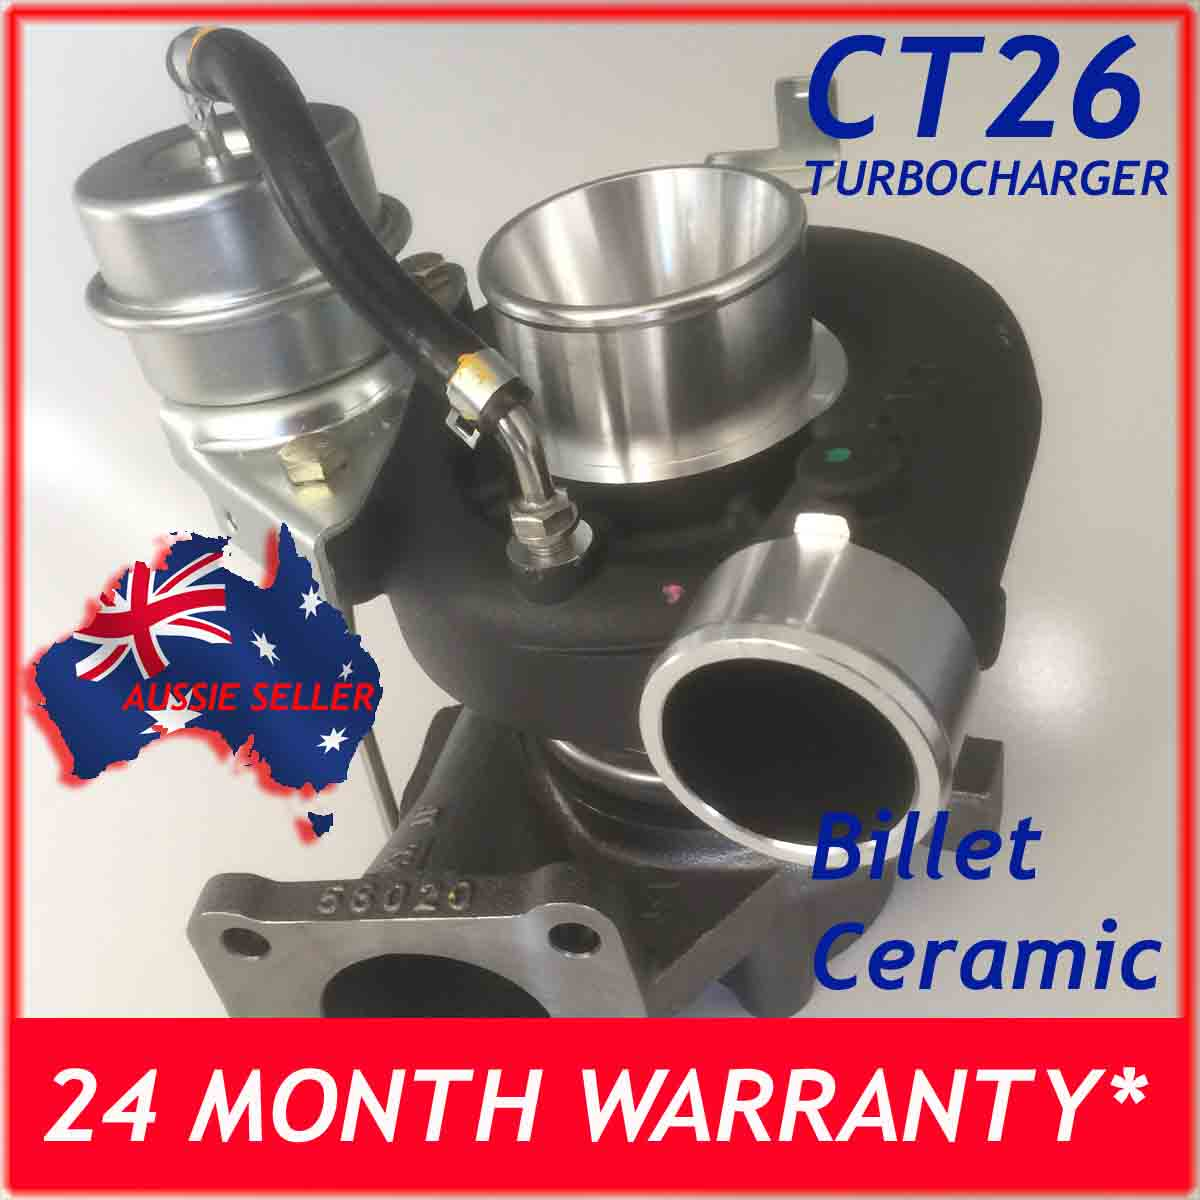 Turbochargers Suitable for Toyota Landcruiser HDJ80 4 2L CT26 17010 CERAMIC  HOUSING HIGH FLOW BILLET Upgrade